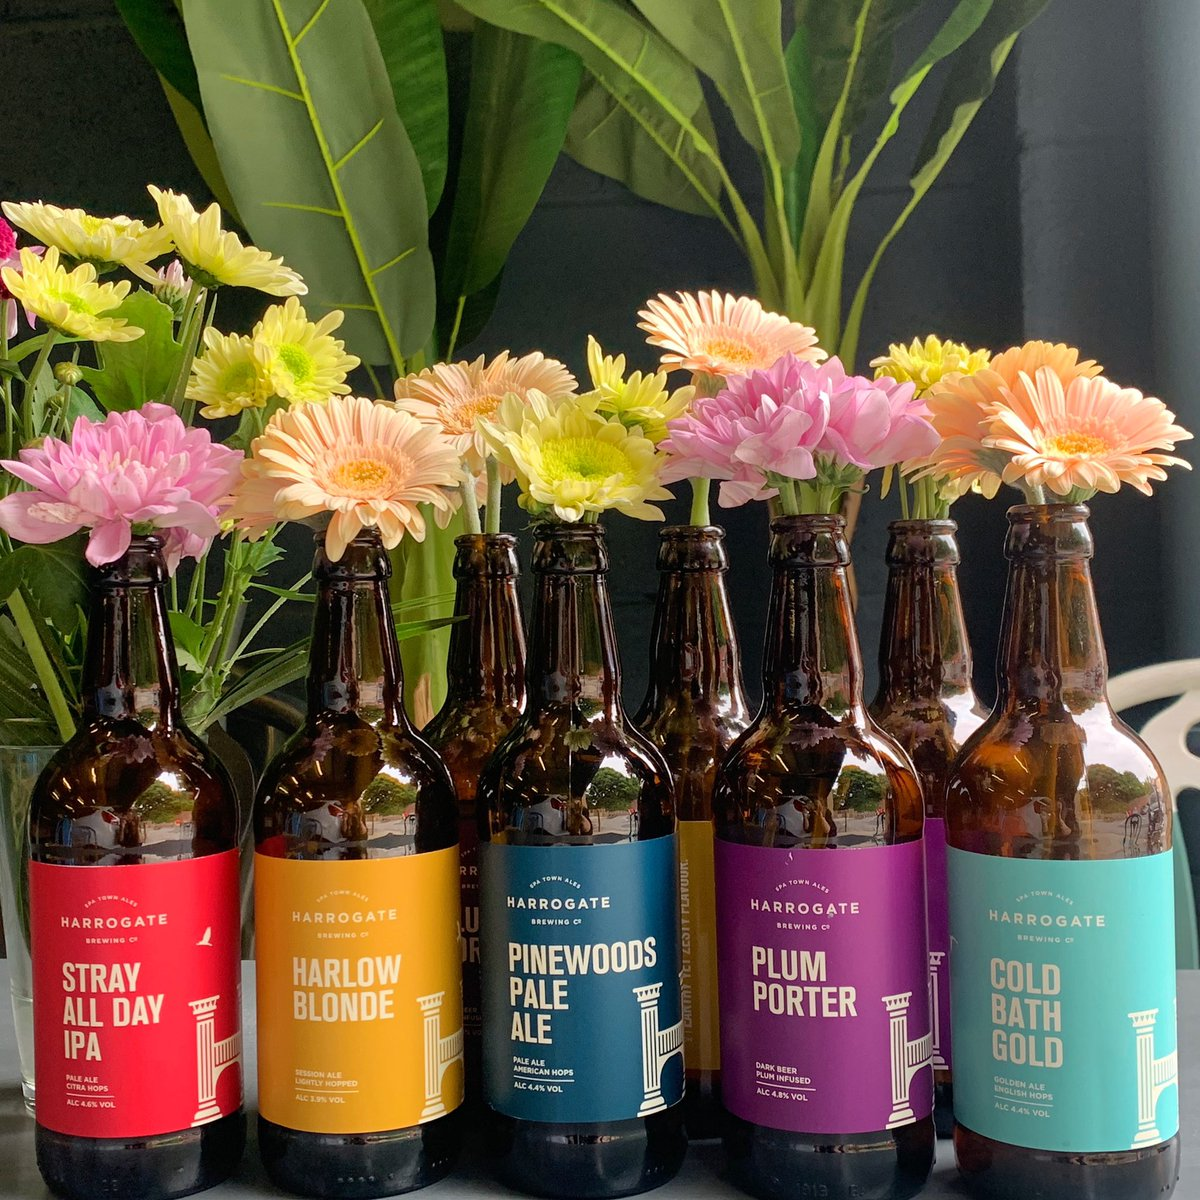 What better way to recycle our bottles than use them as table decorations! 🌸🌻🌺  #flowers #beerbottles #tabledecoration #flowerpower #beergarden #brewery #beer #craftbeer #summer #harrogate #knaresborough